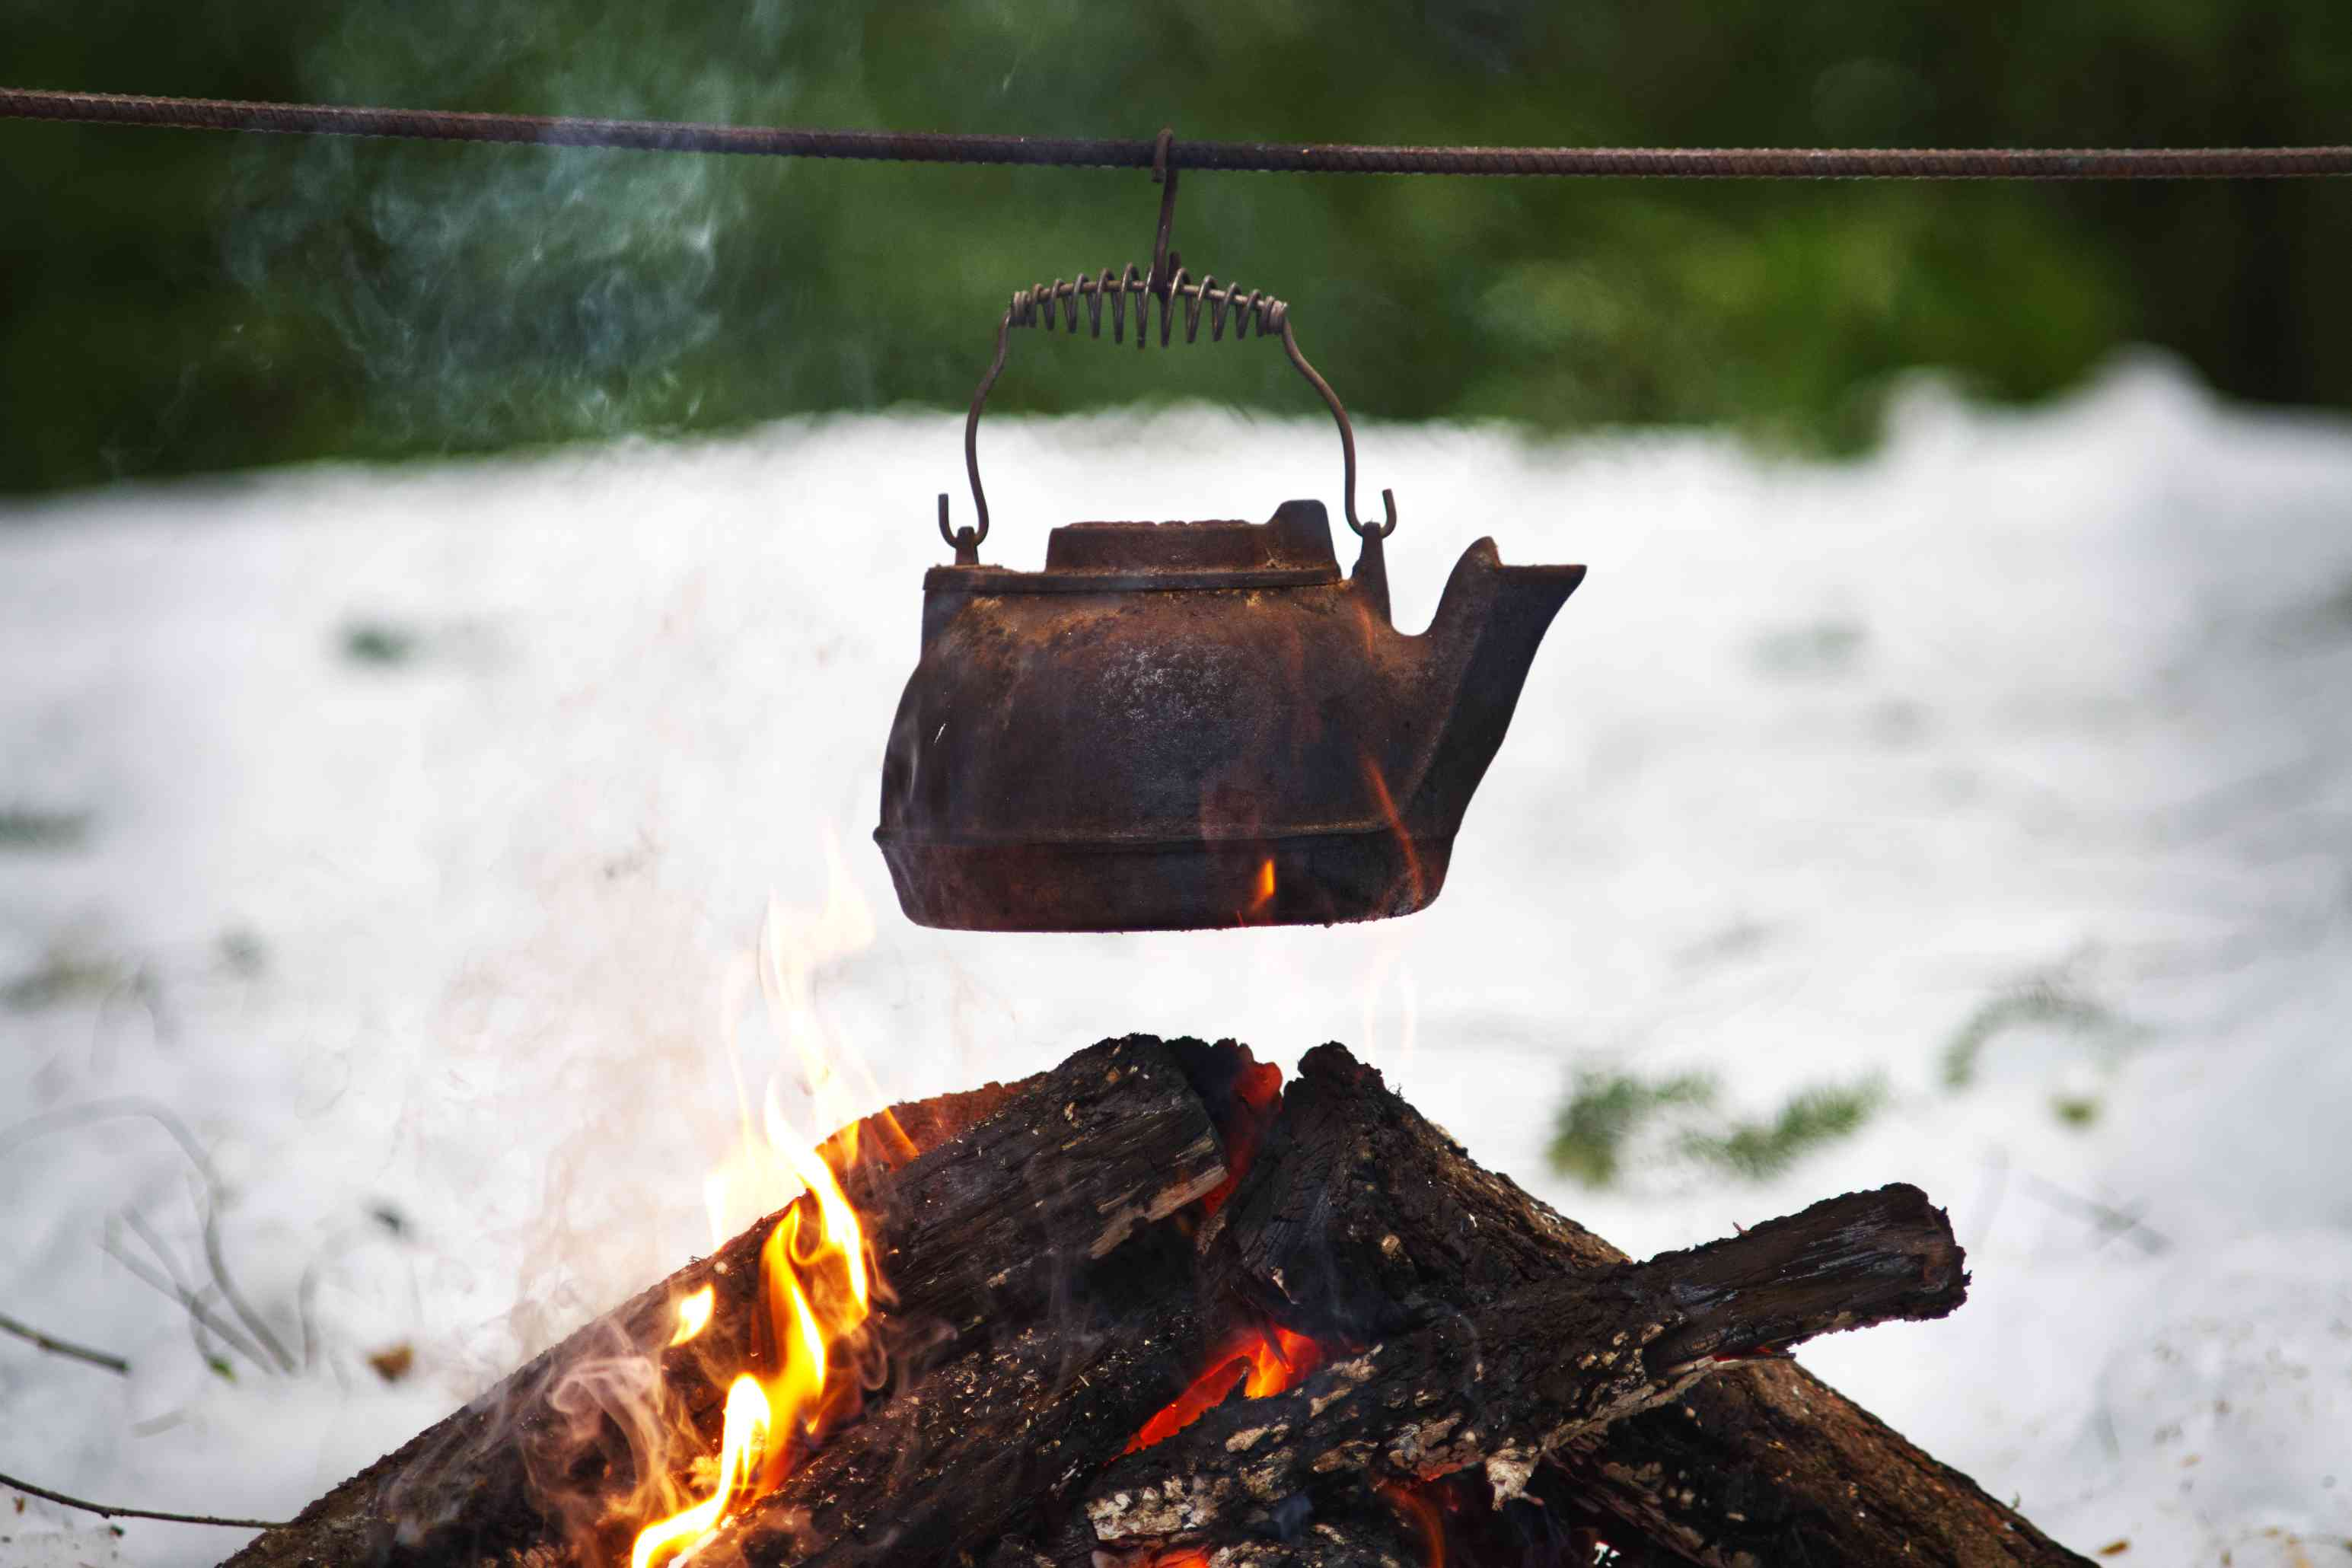 oil iron kettle cooking over campfire in snow